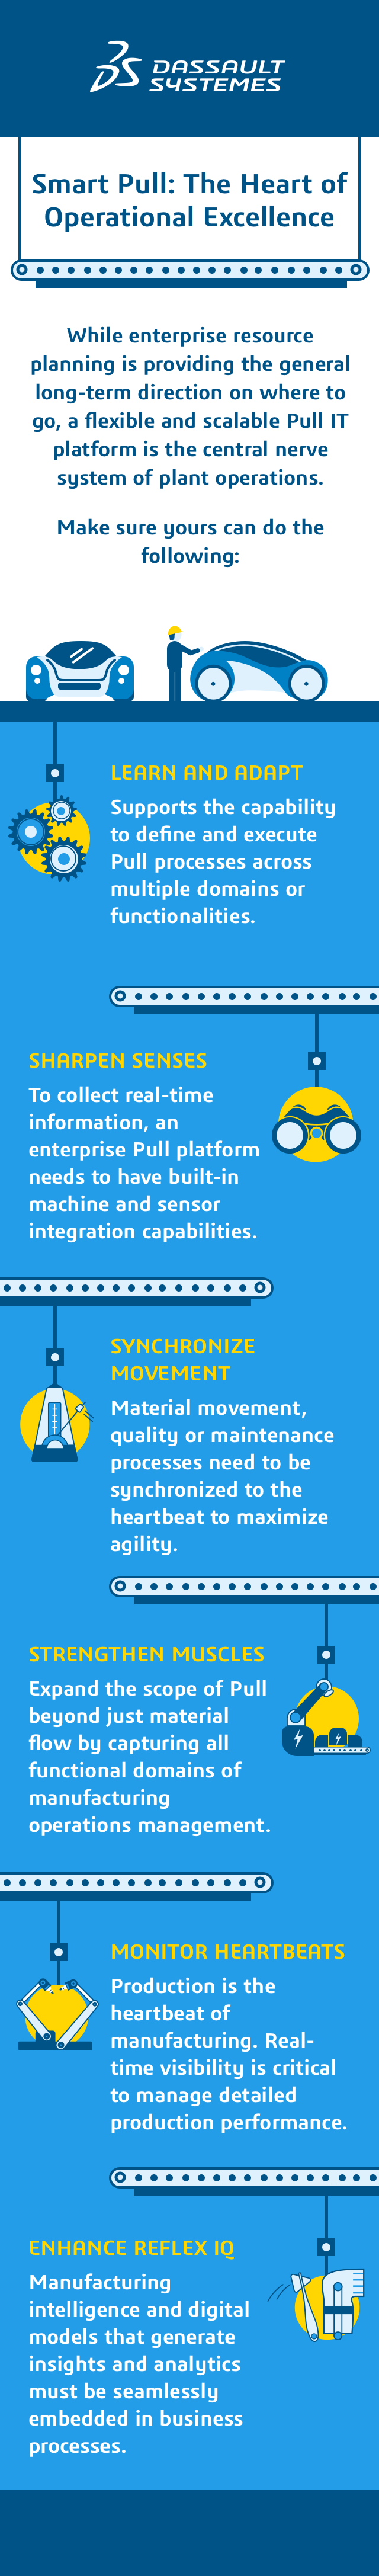 Mass customization > Smart Pull: The Heart of Operational Excellence > Dassault Systèmes®